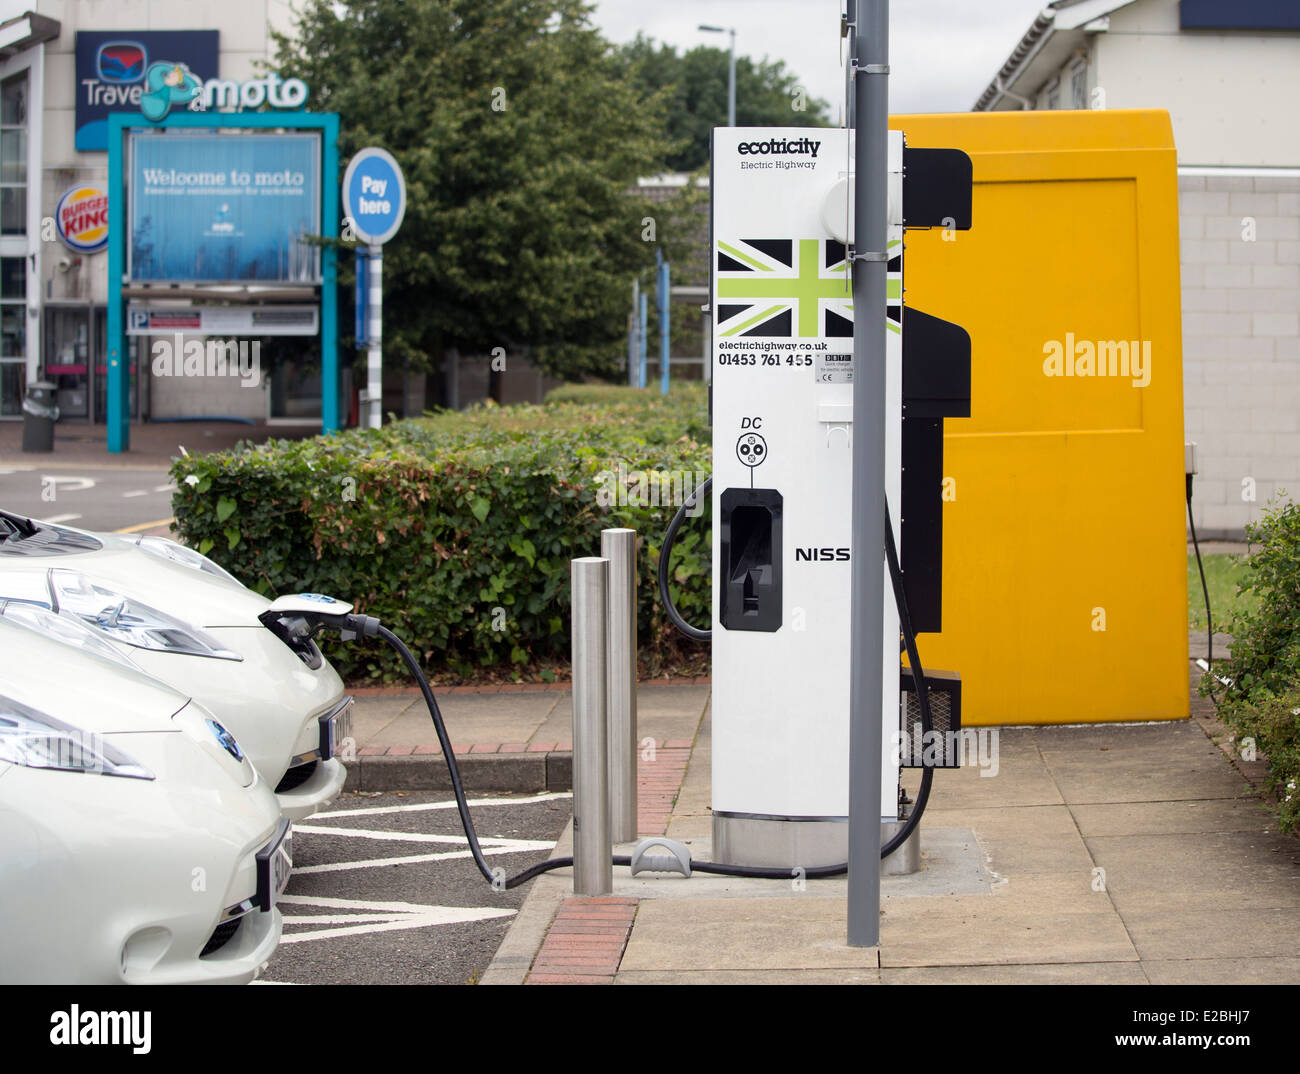 Pair of Electric cars Nissan Leaf on charge at Heston Services. - Stock Image